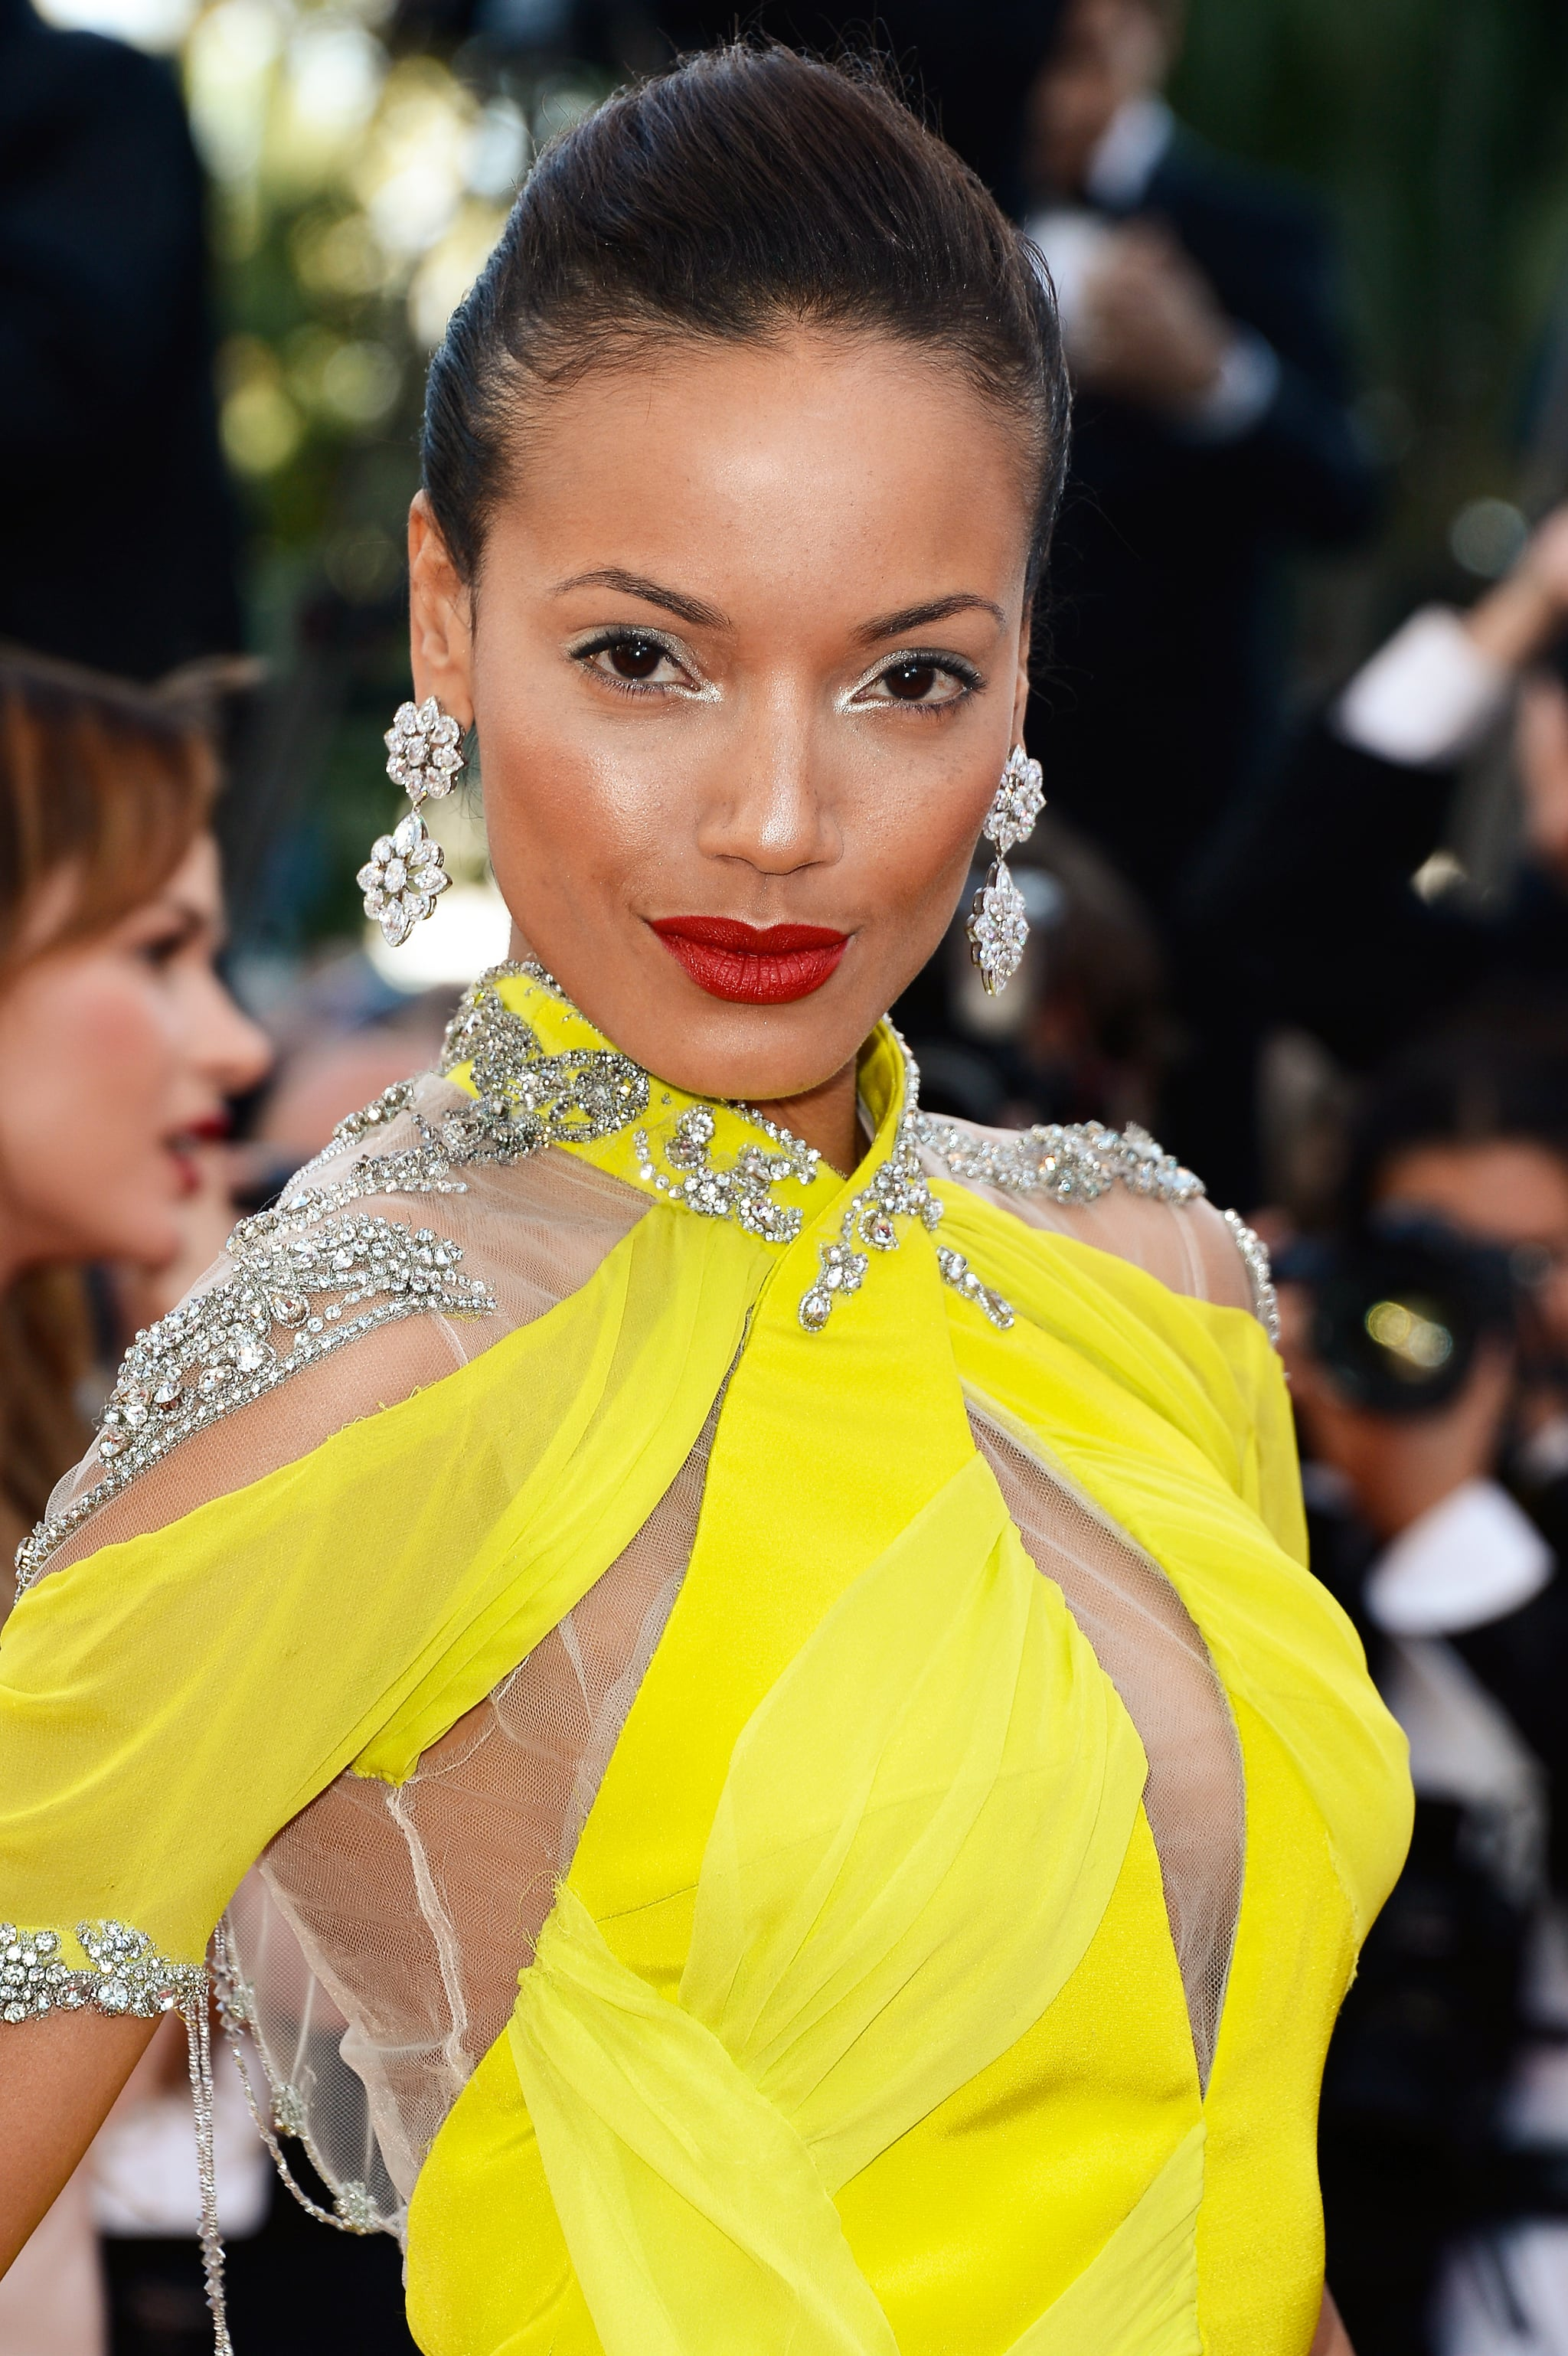 Selita Ebanks worked the Blood Ties red carpet in a shocking neon yellow gown. She wore her hair slicked back and went for shimmering eye makeup and a matte red lip.